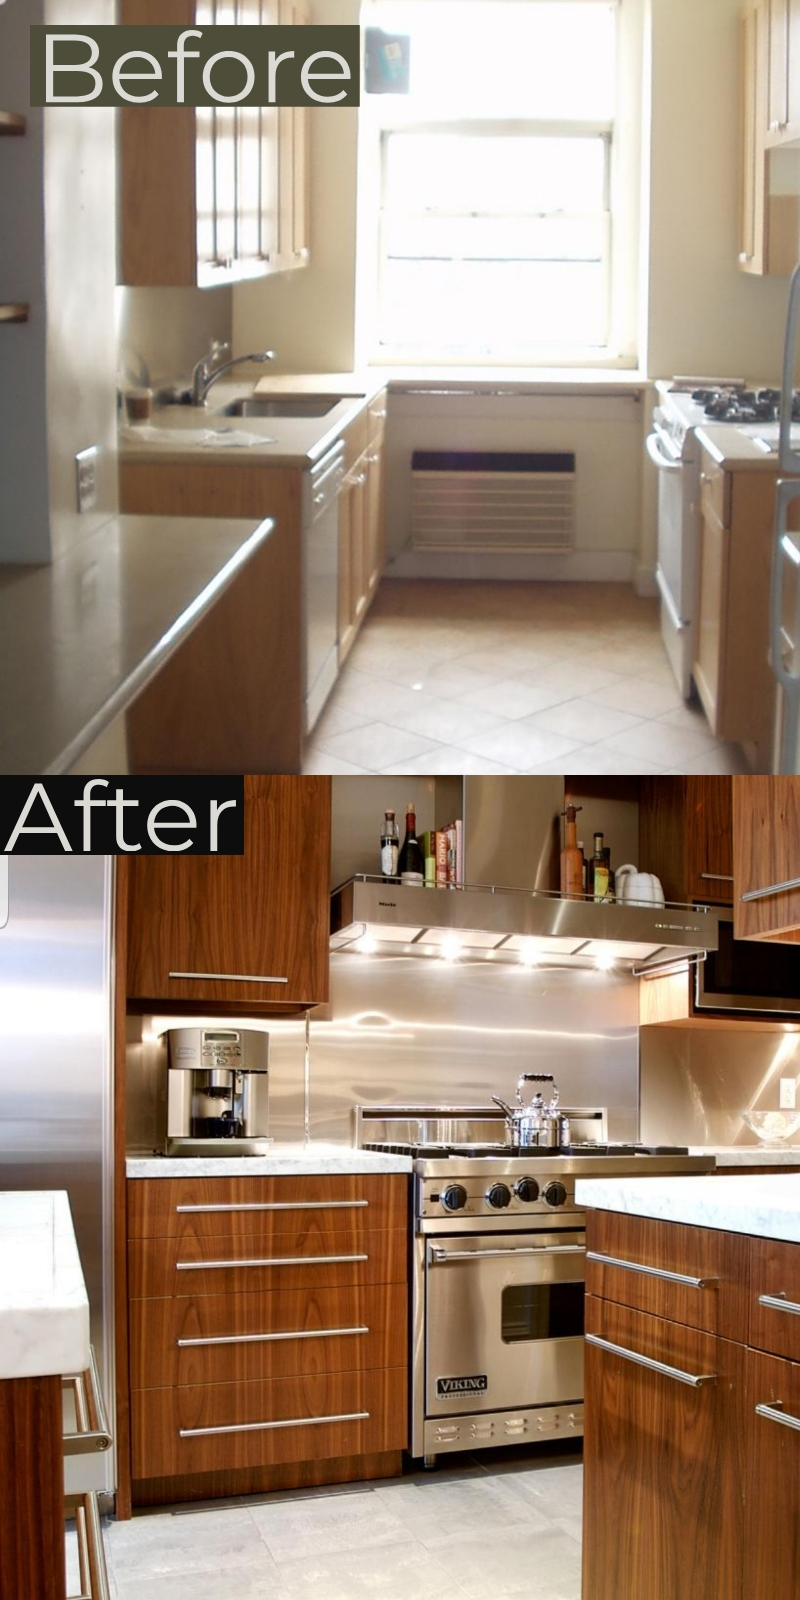 before and after kitchen remodels with prices